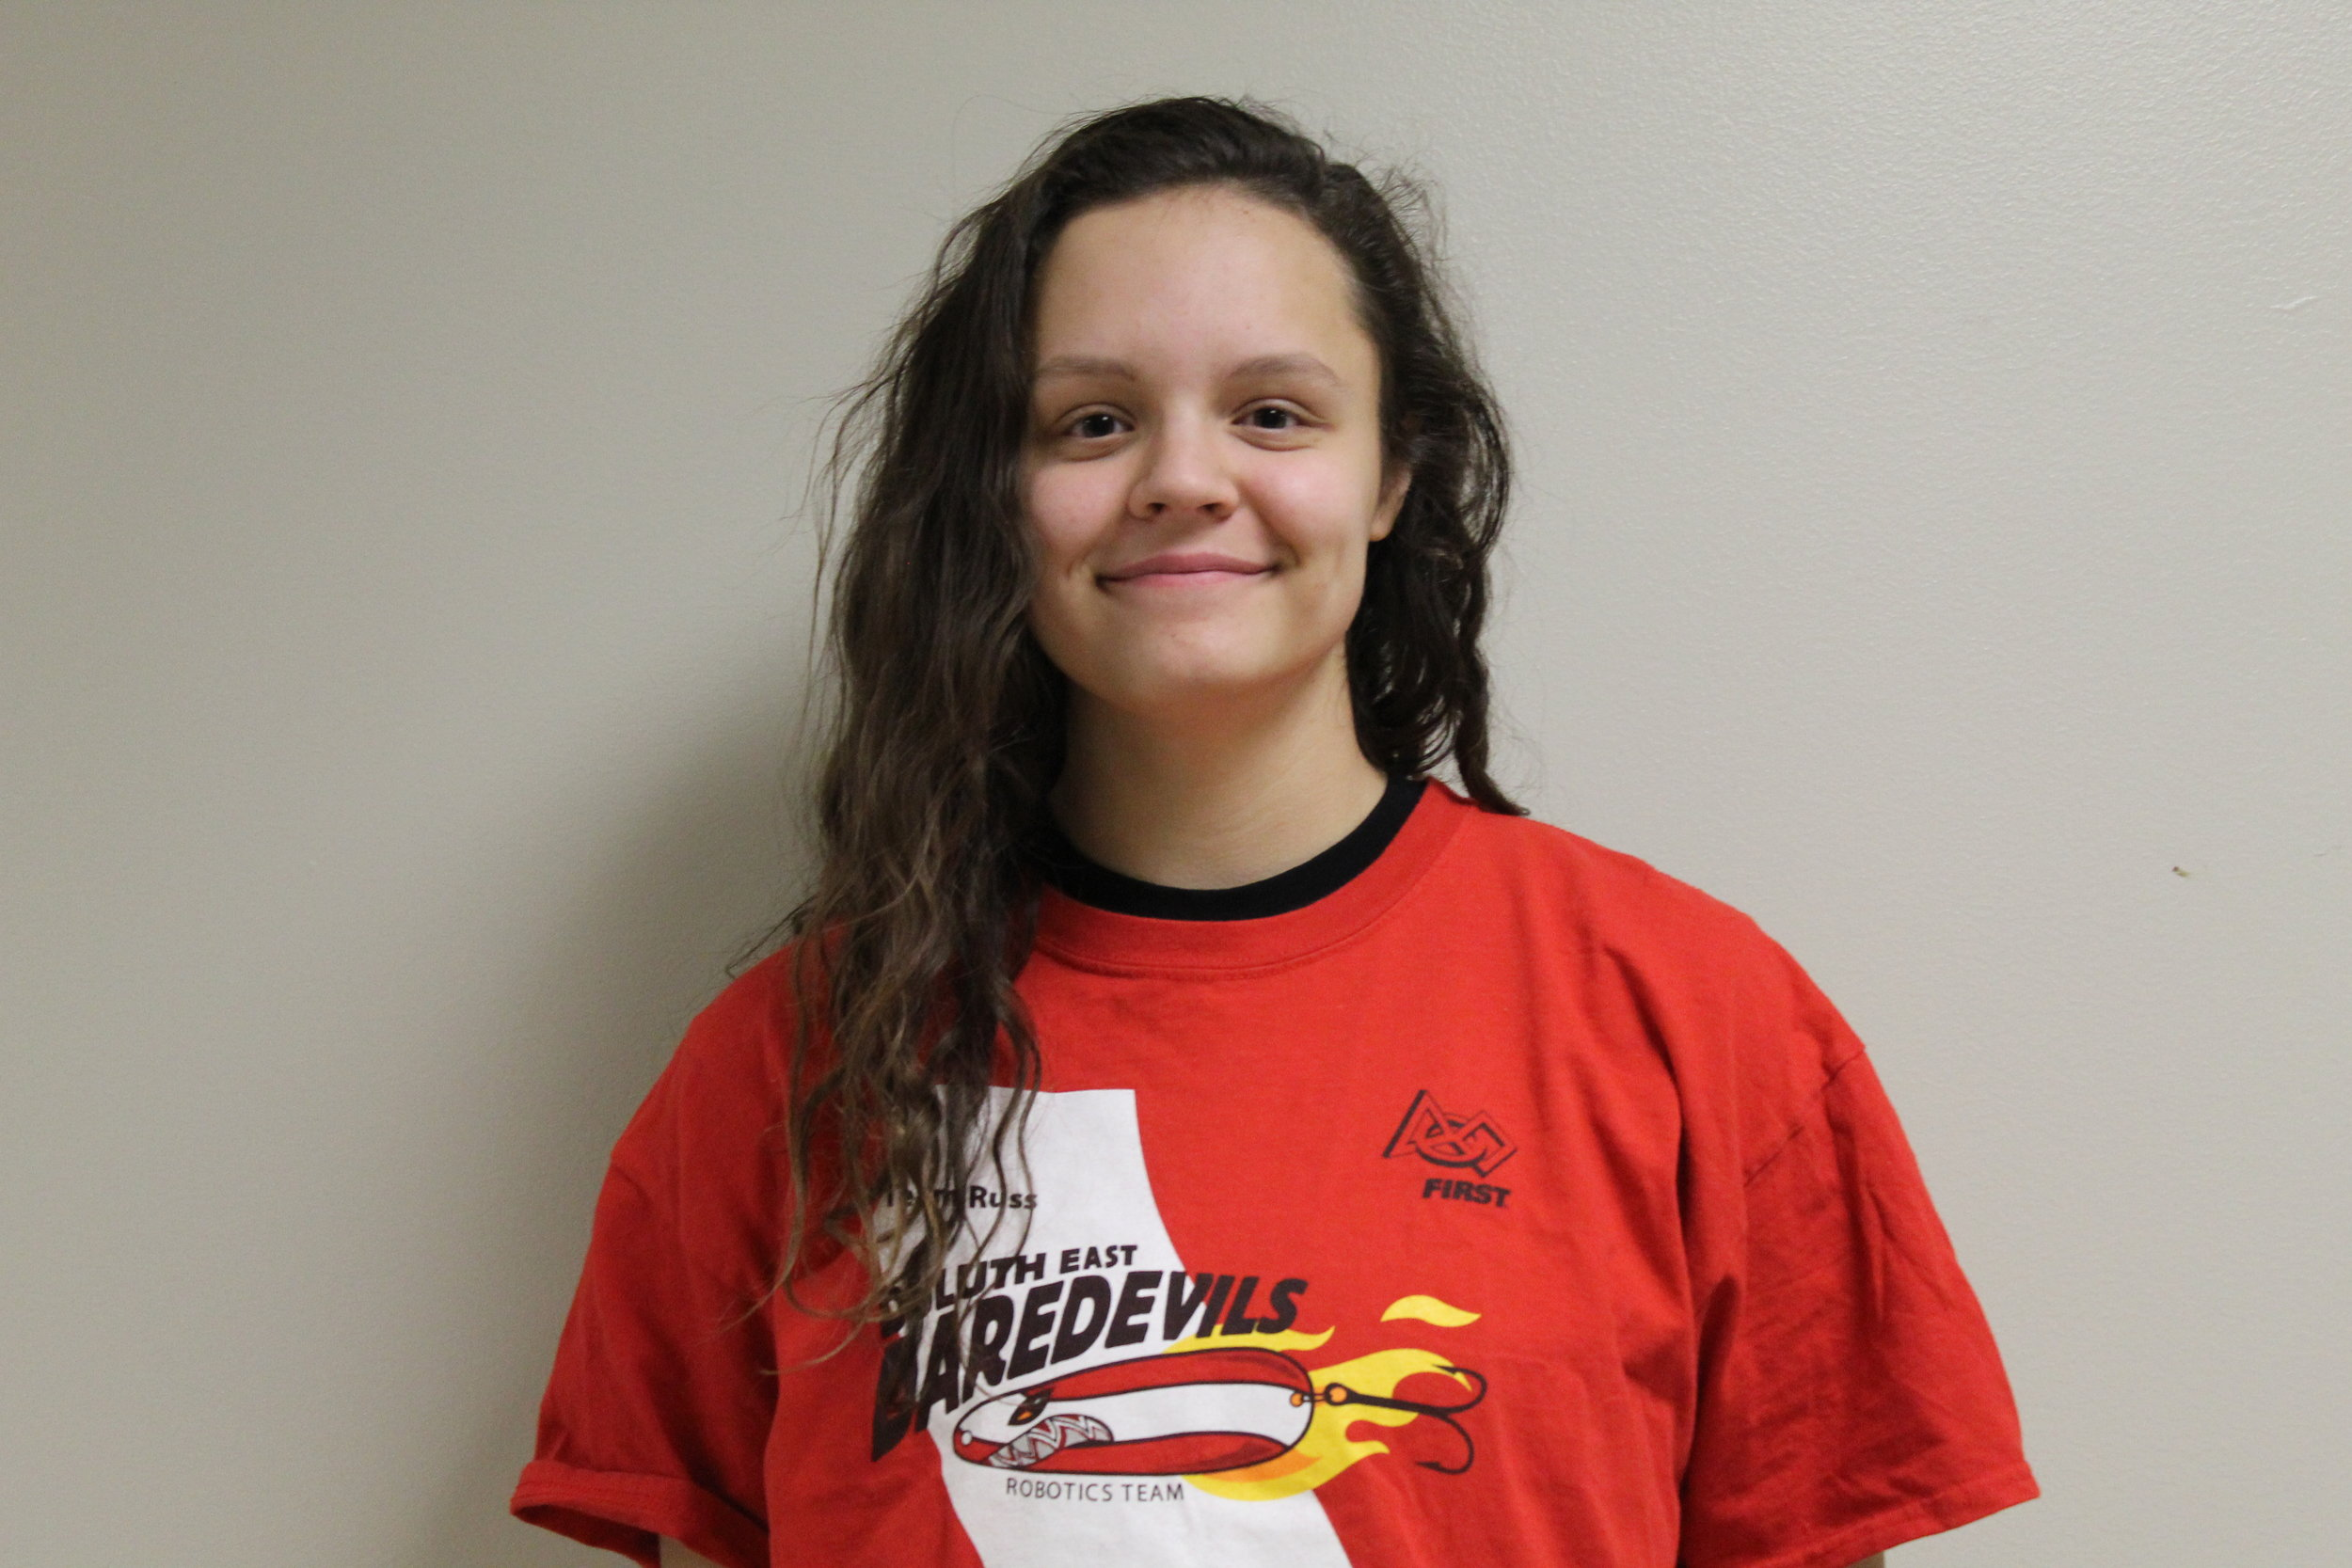 Kylene s. - Kylene is a sophomore at Duluth East High, and this is her second year on the team. In her free time she plays soccer and competes in track and field.